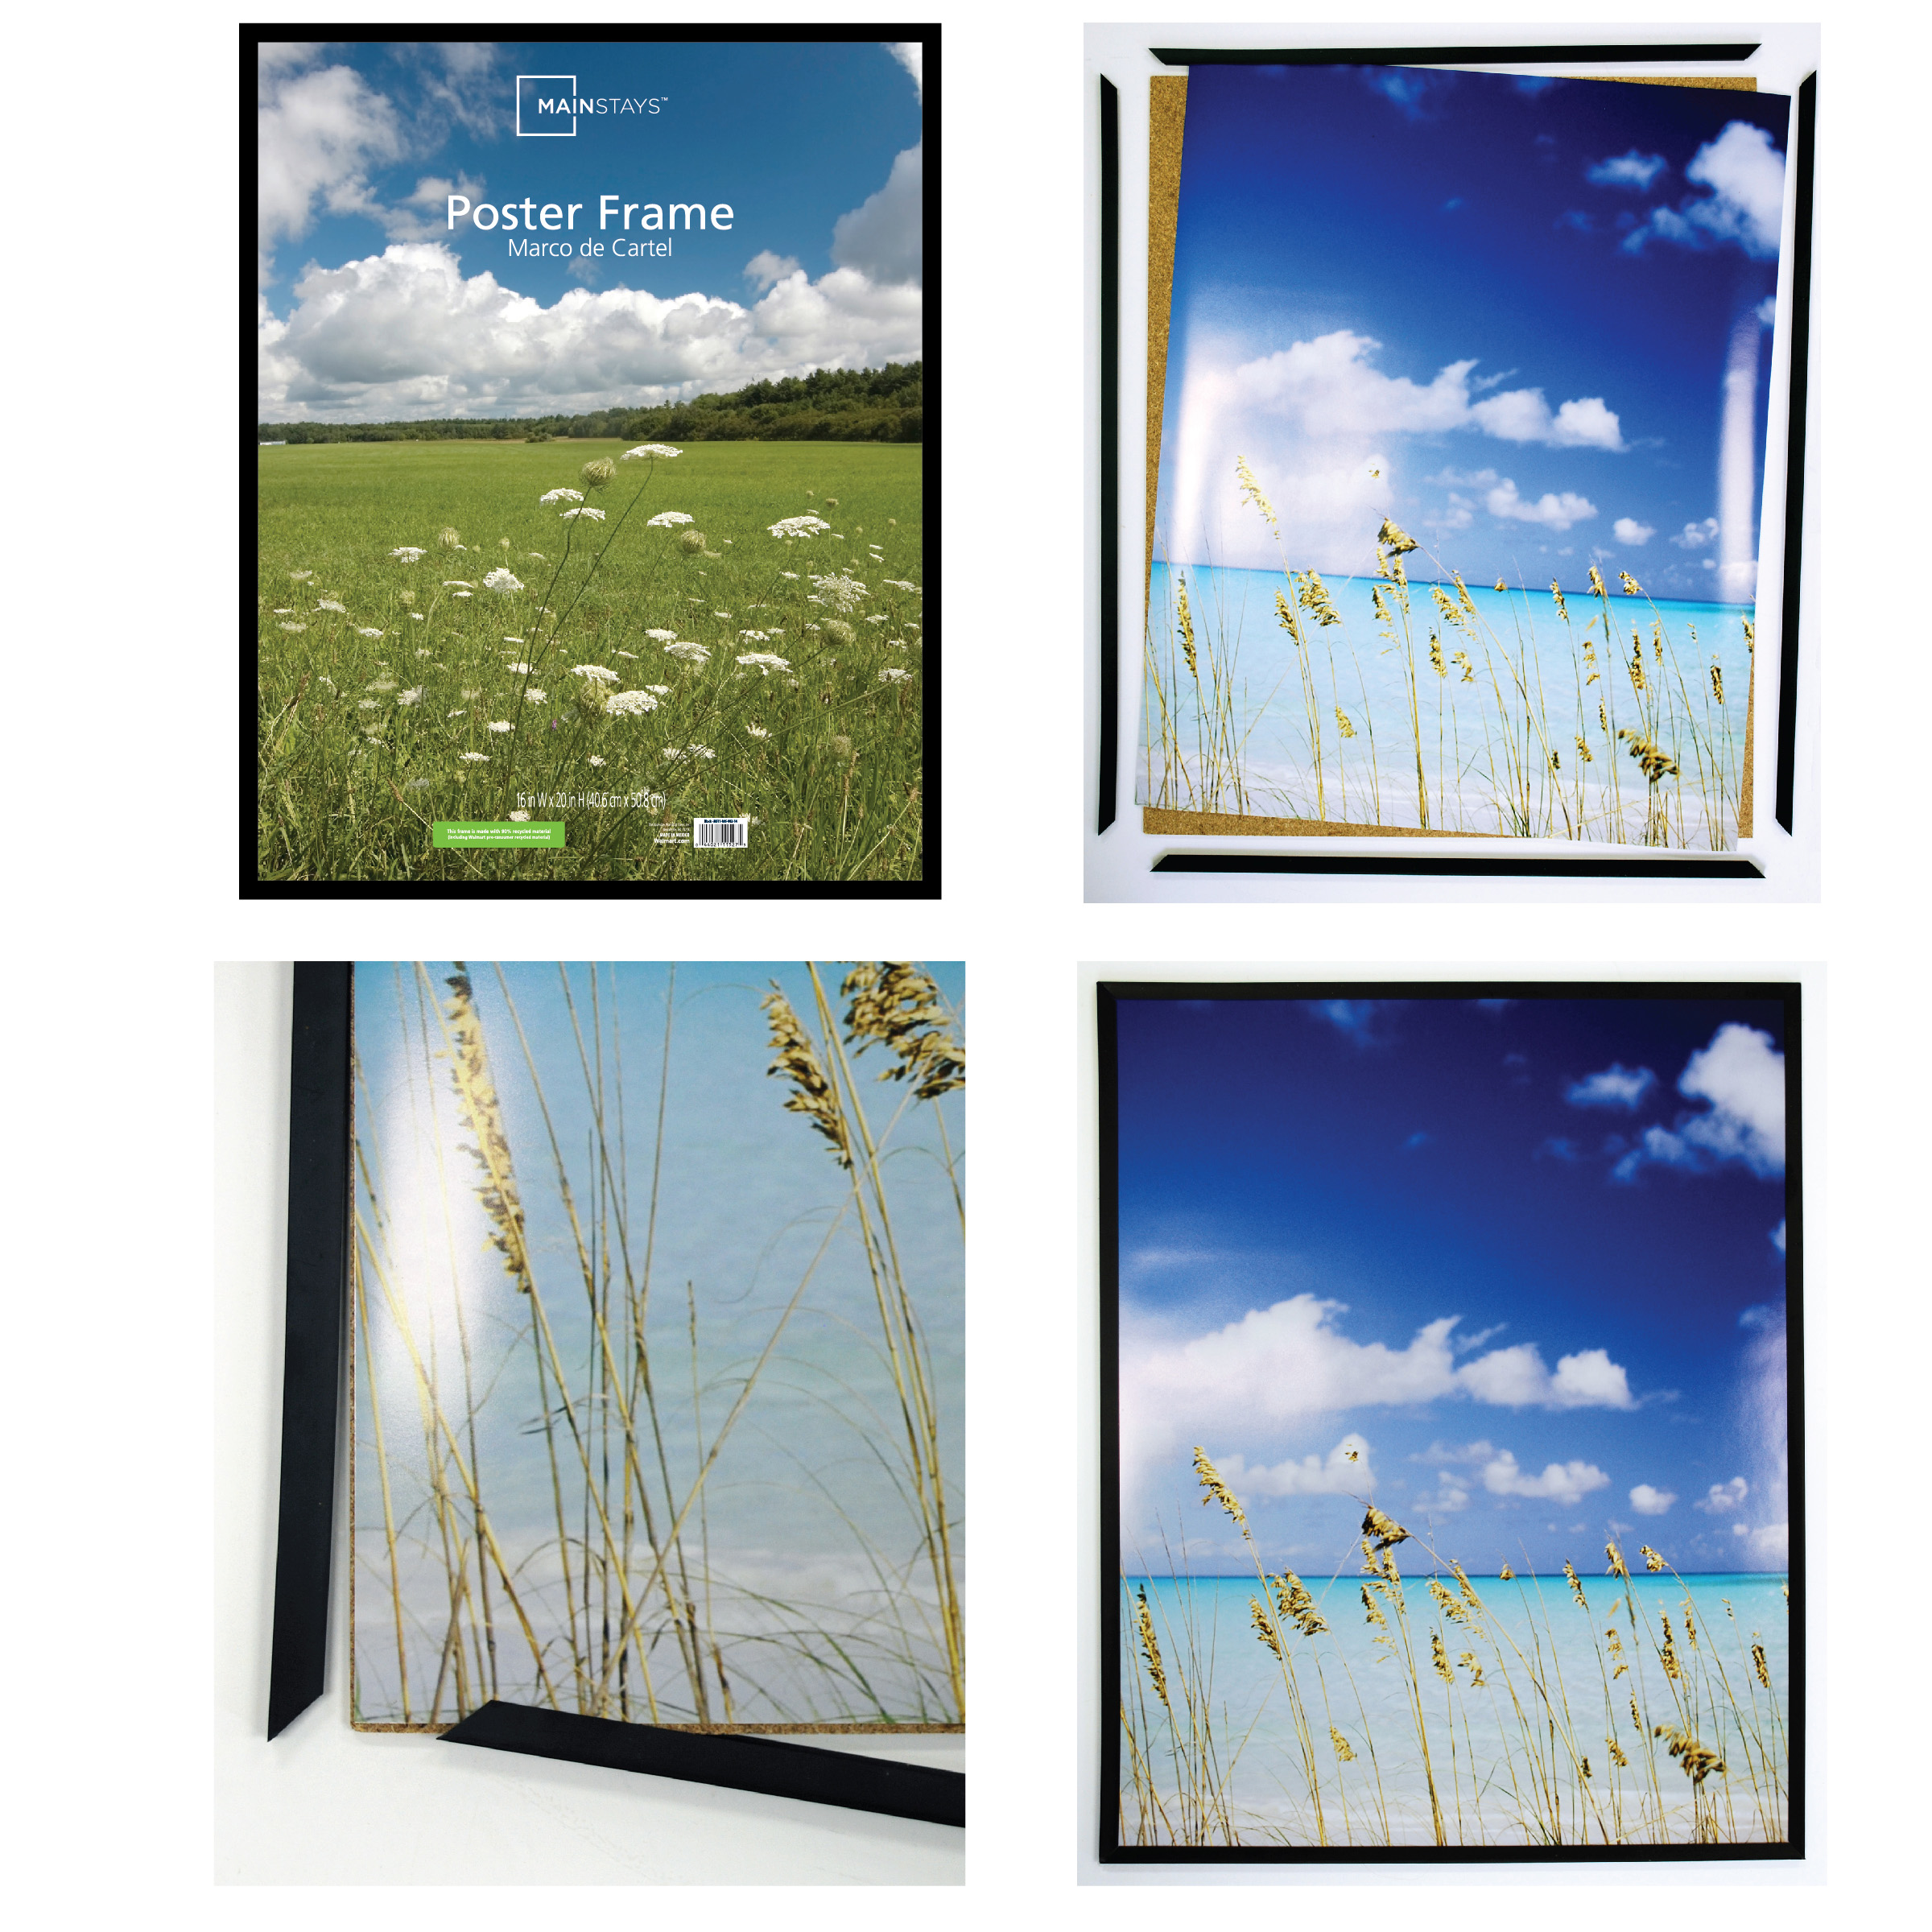 Mainstays 24x36 Thin Poster and Picture Frame, Black - Walmart.com